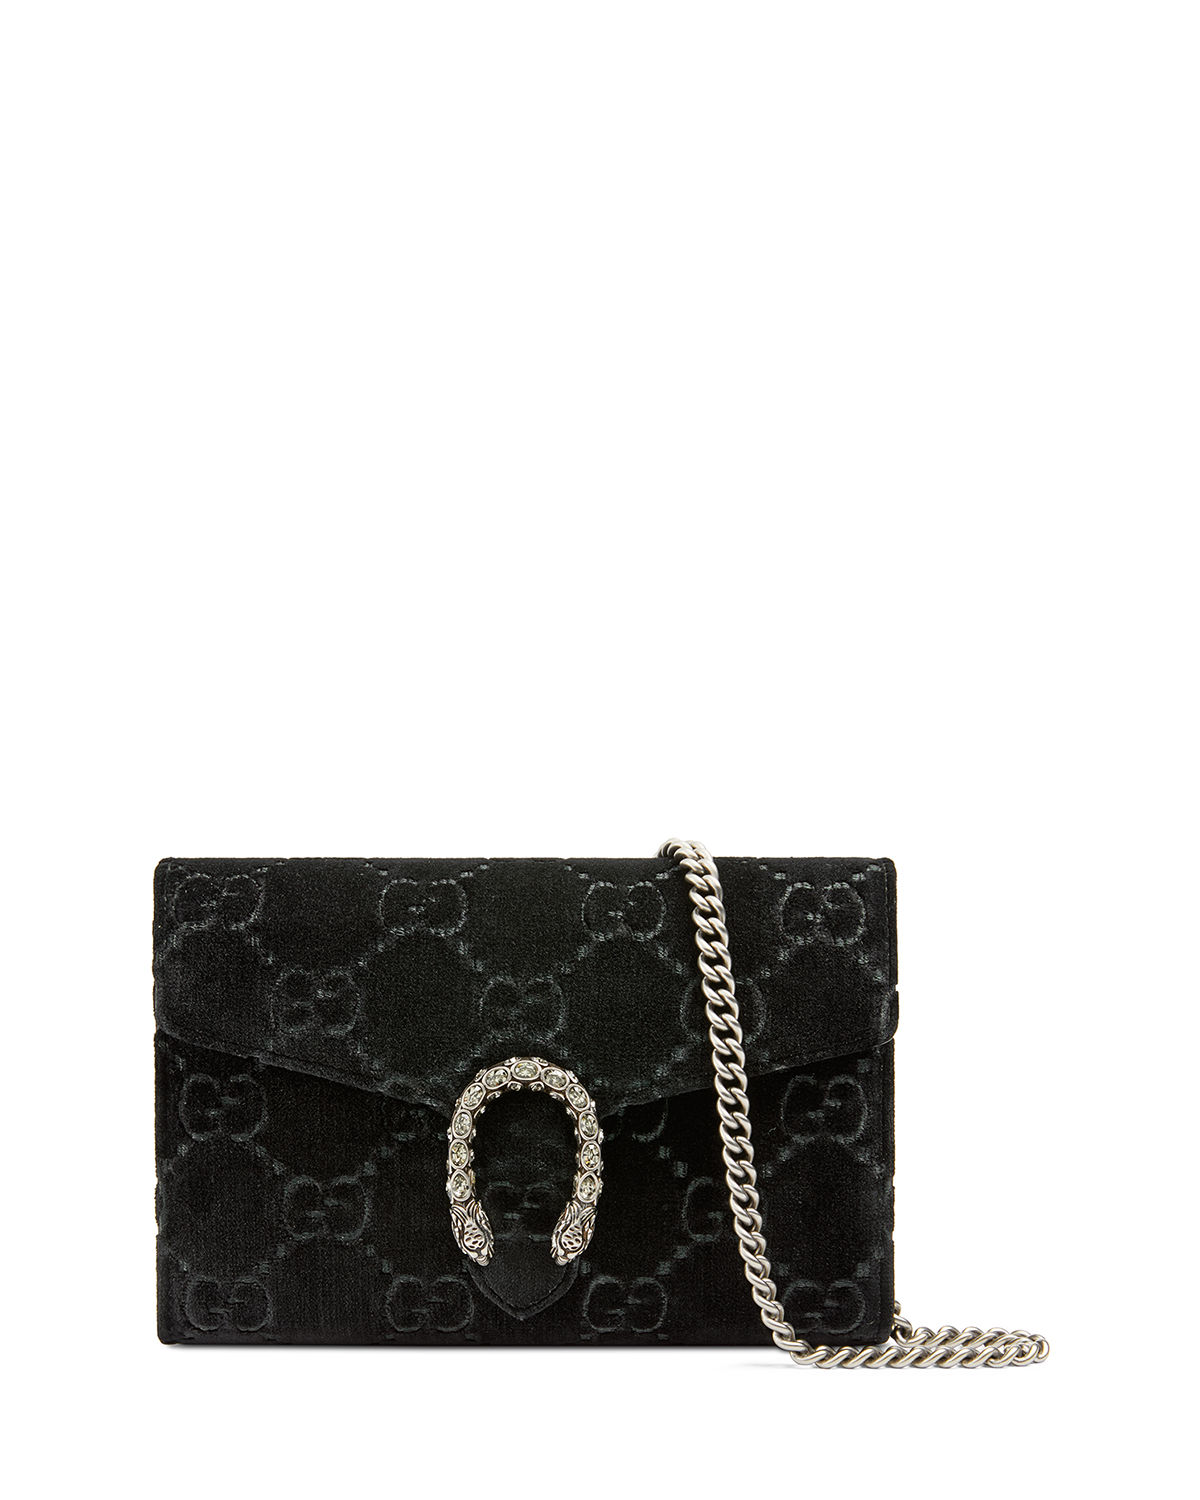 a0b703810a0e Gucci Dionysus Velvet GG Supreme Wallet On Chain